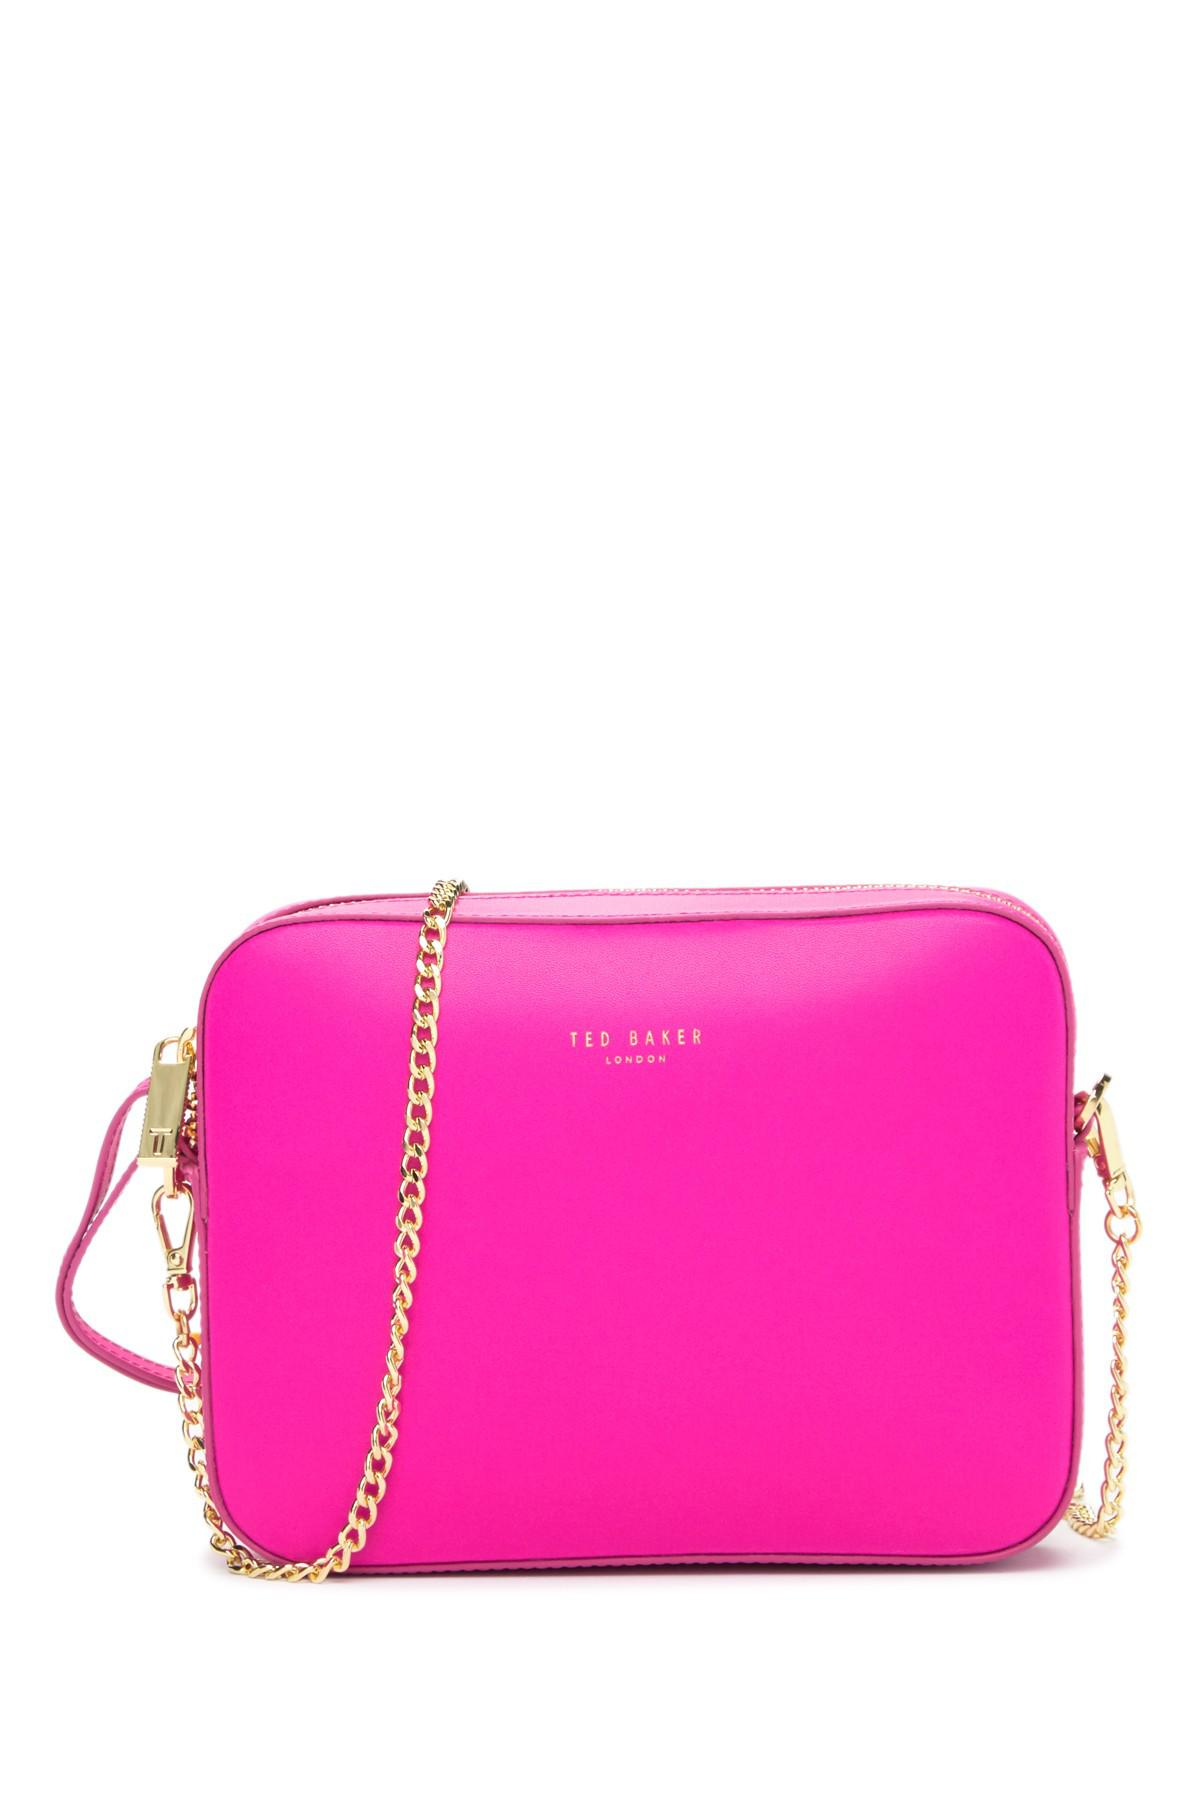 745357b49 Ted Baker Laneyy Chain Strap Camera Bag in Pink - Lyst